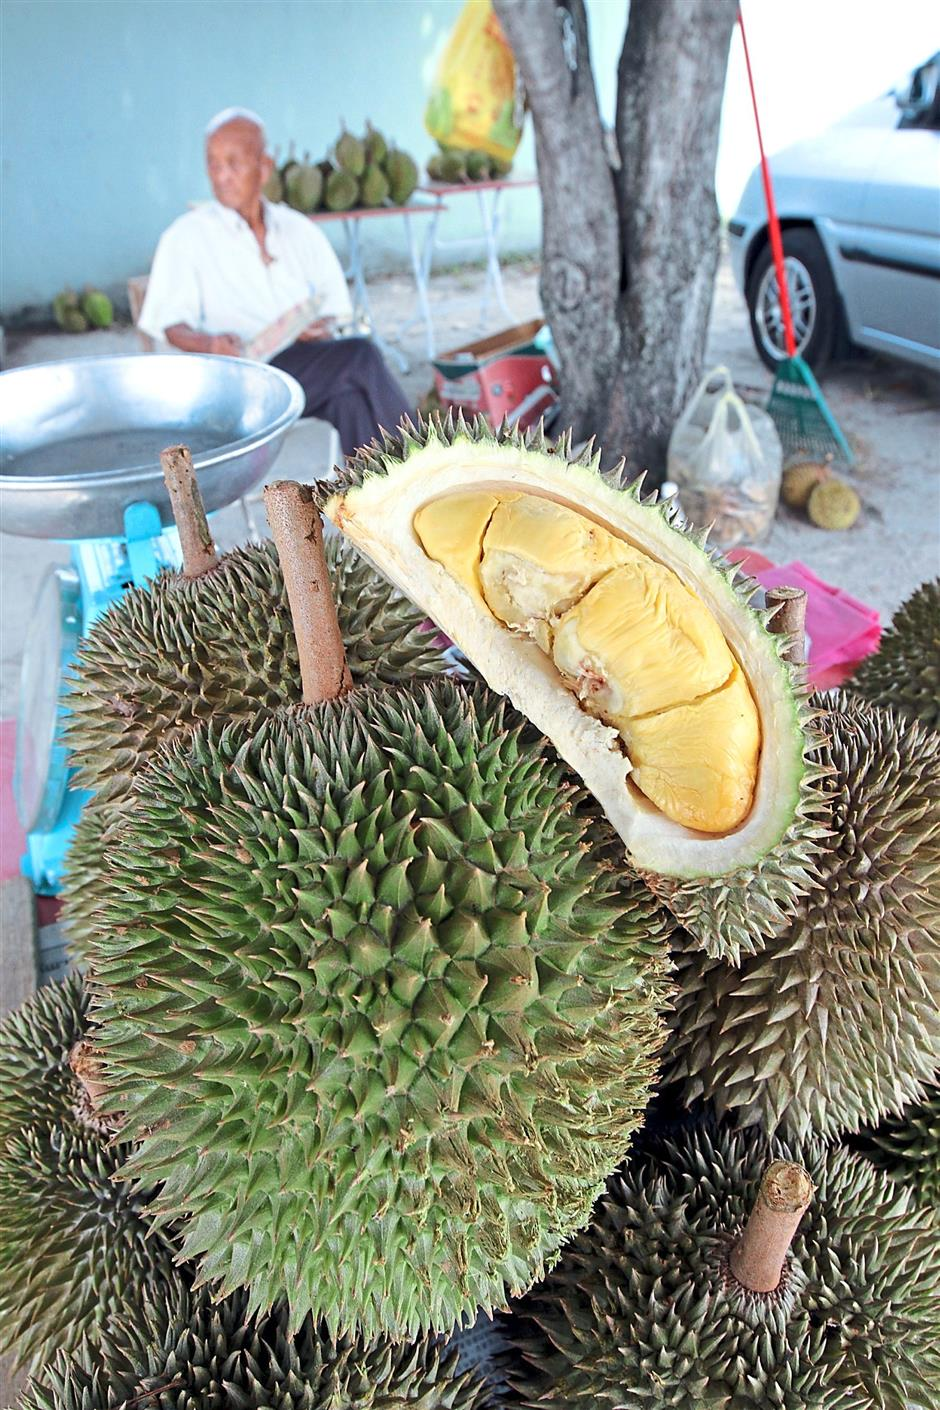 Cloned durians, from the D24 to Musang King varieties, on sale at a stall near the Canning Garden roundabout in Ipoh.